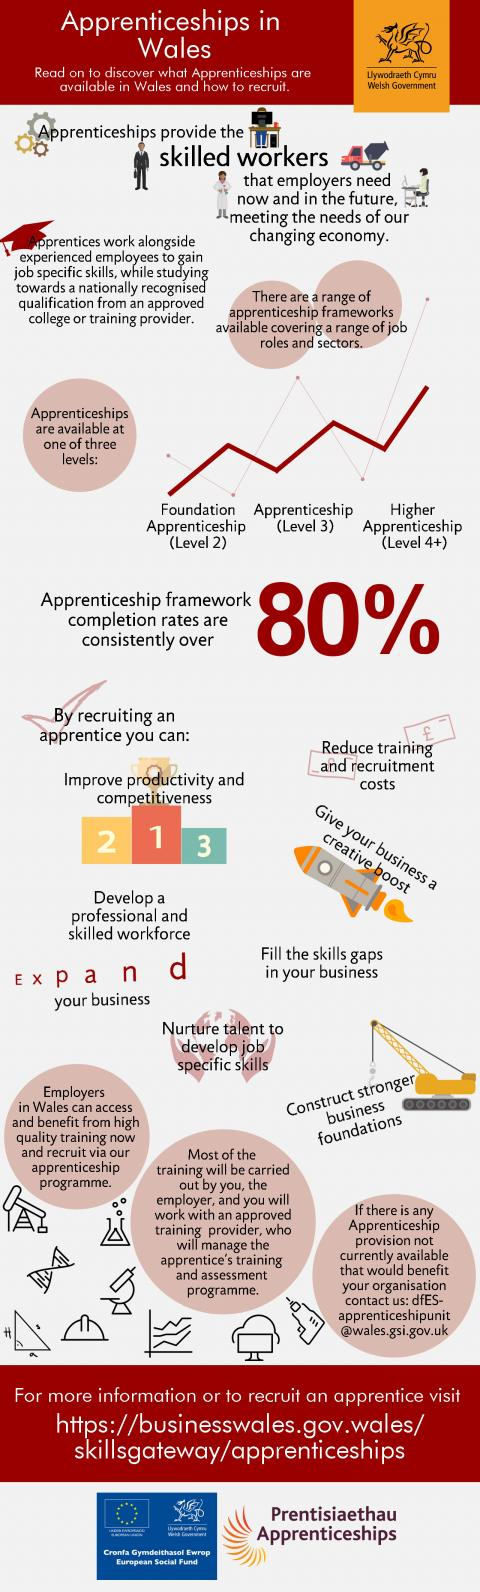 Apprenticeships in Wales